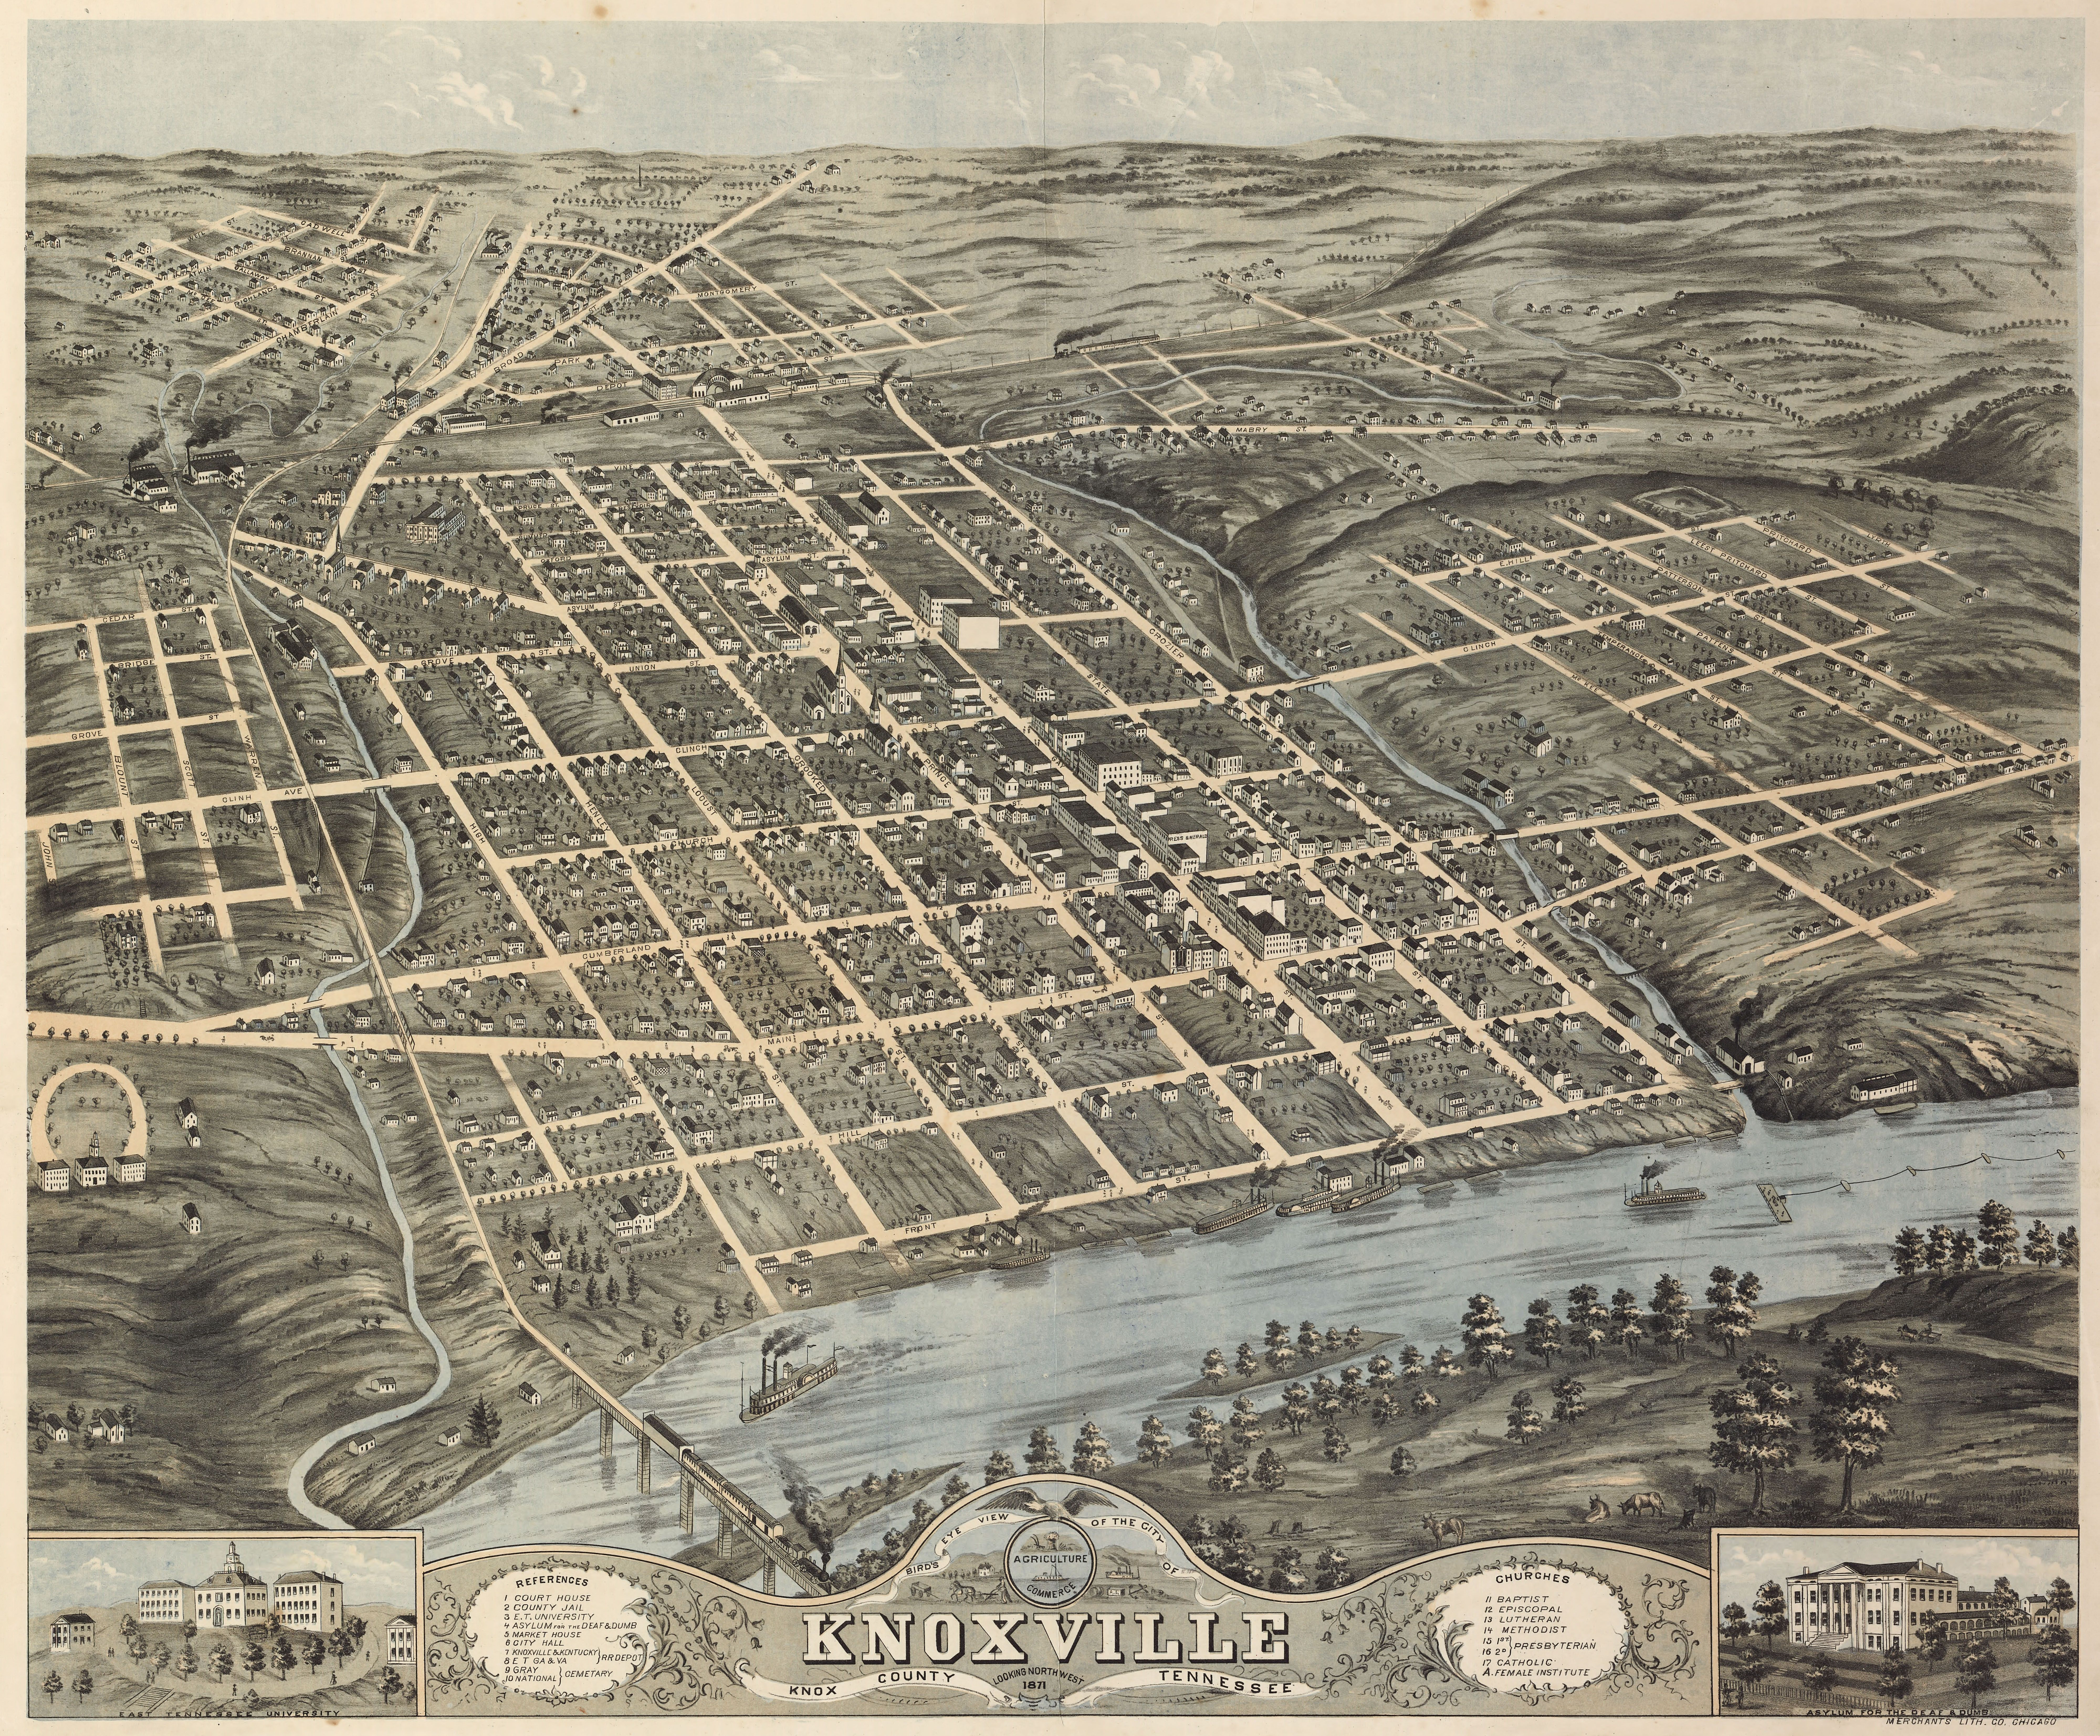 Old Map Of Knoxville Tennessee Google Search Knoxville History - County map of east tennessee